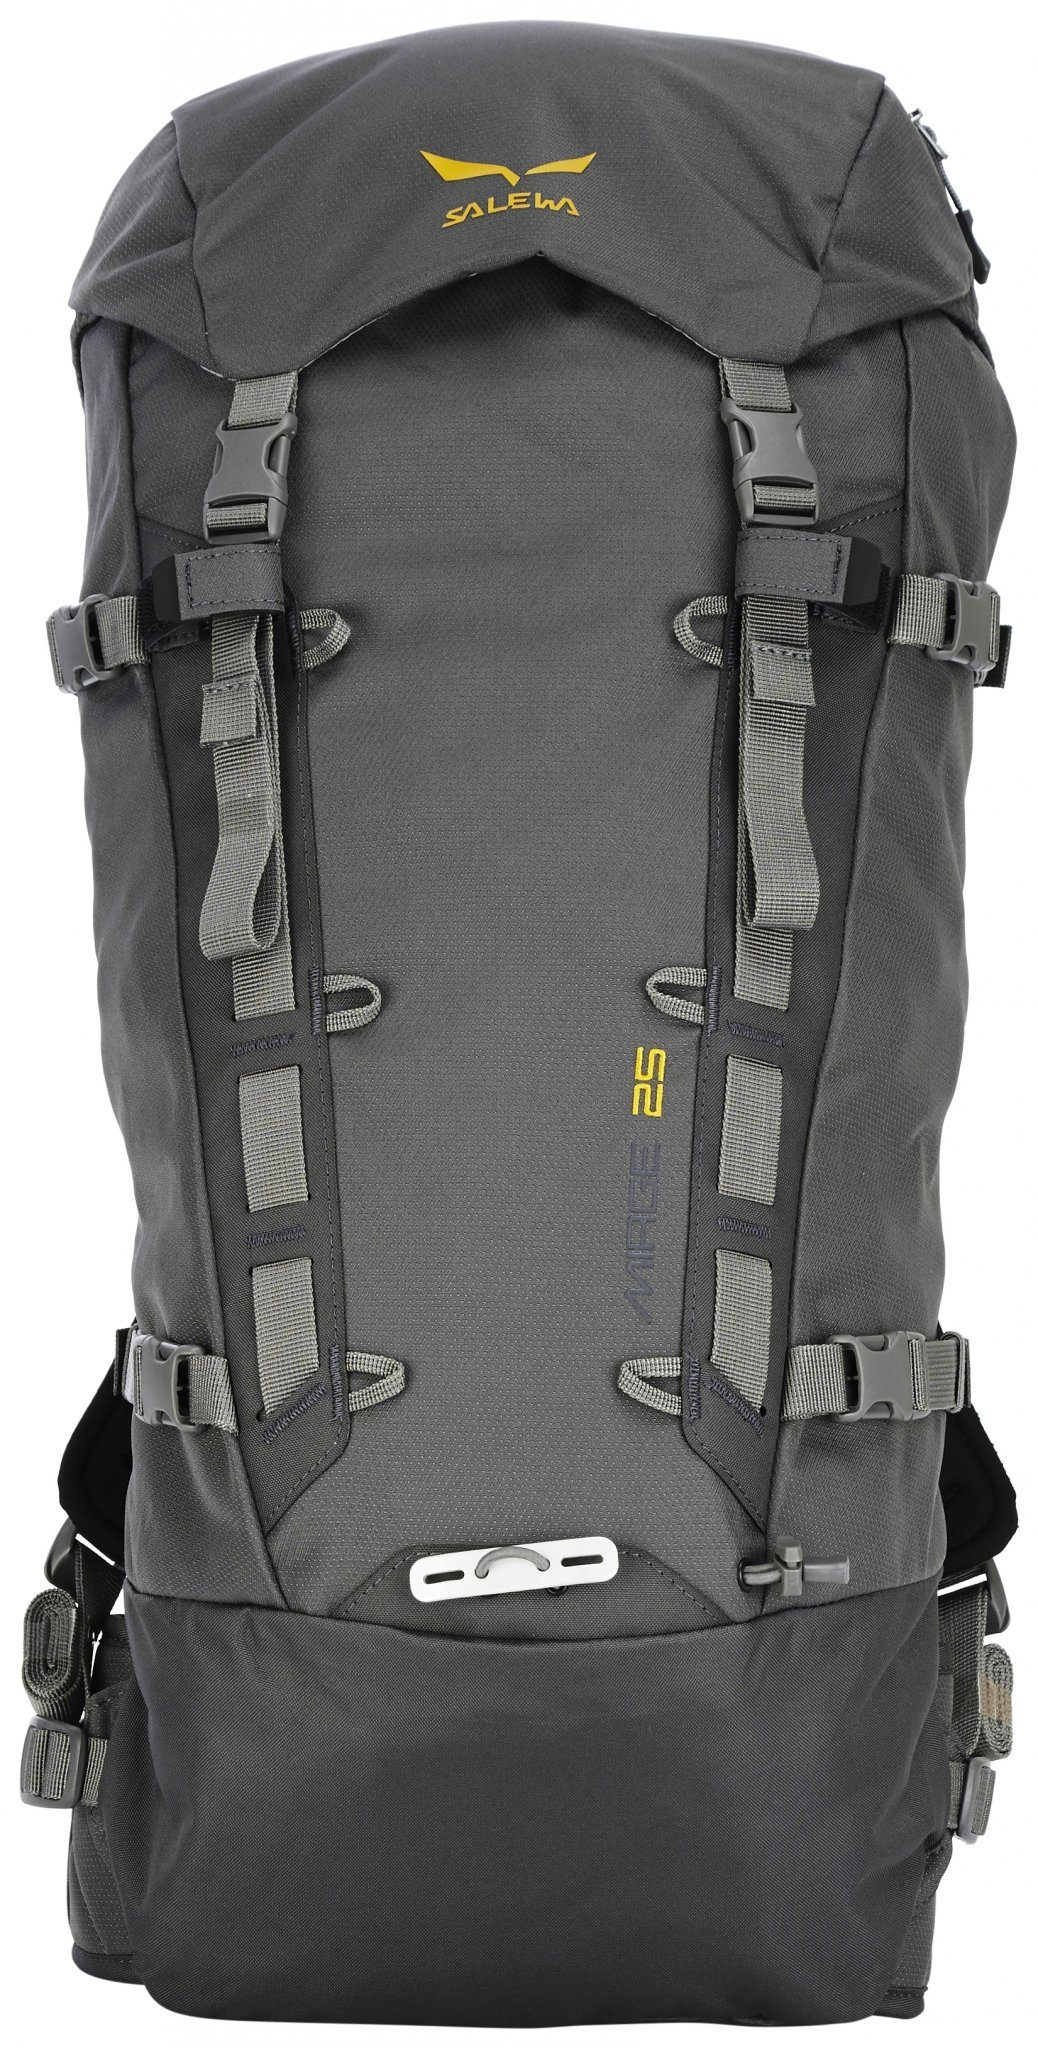 Salewa Wanderrucksack »Miage 25 Backpack«